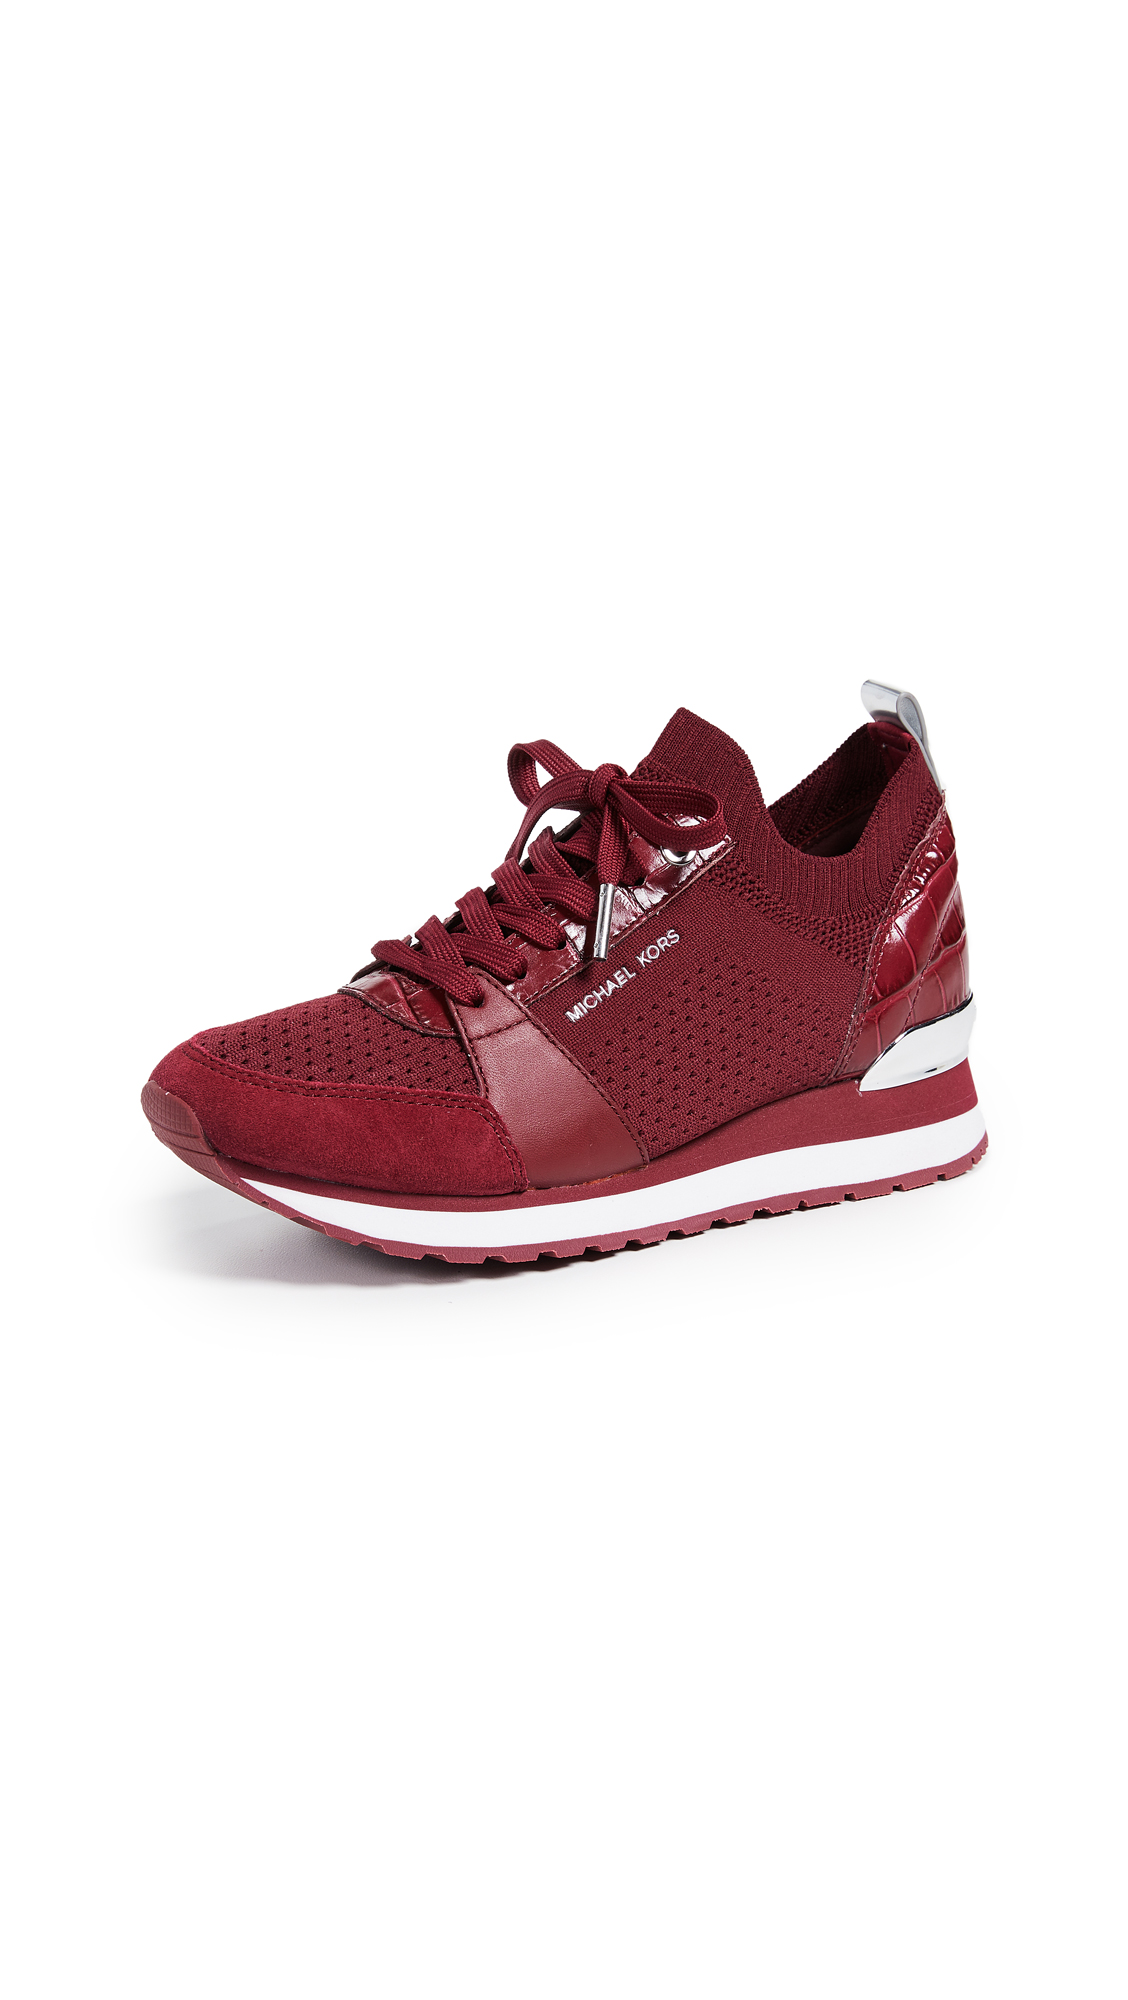 MICHAEL Michael Kors Billie Knit Trainer Sneakers - Maroon